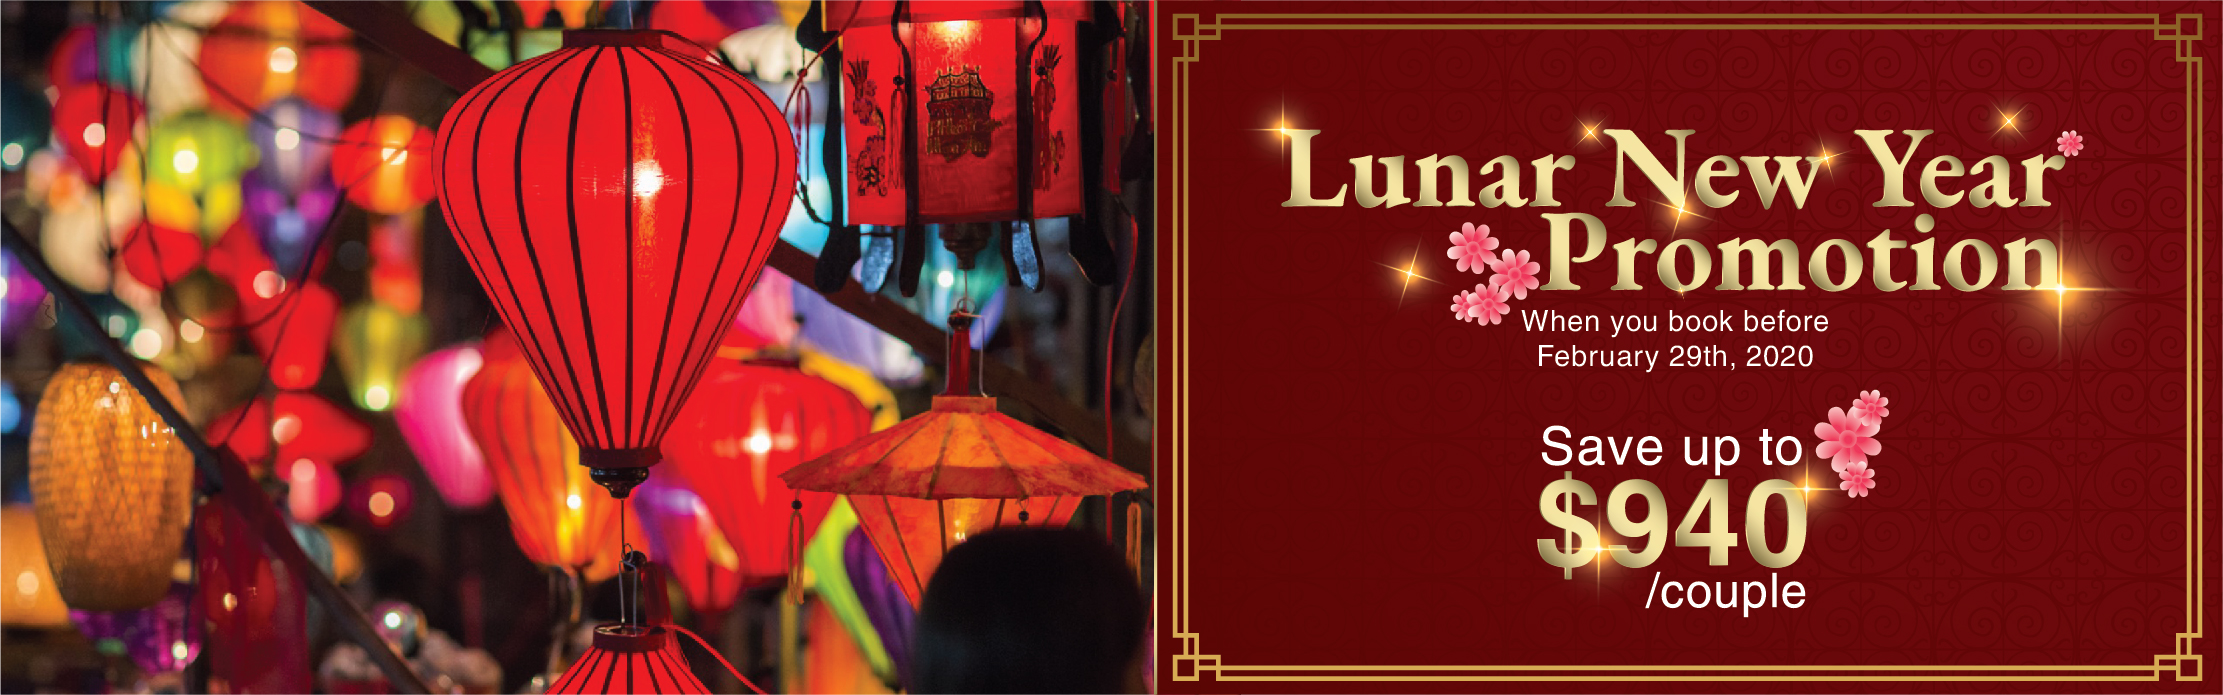 Victoria Voyages Lunar New Year Promotion